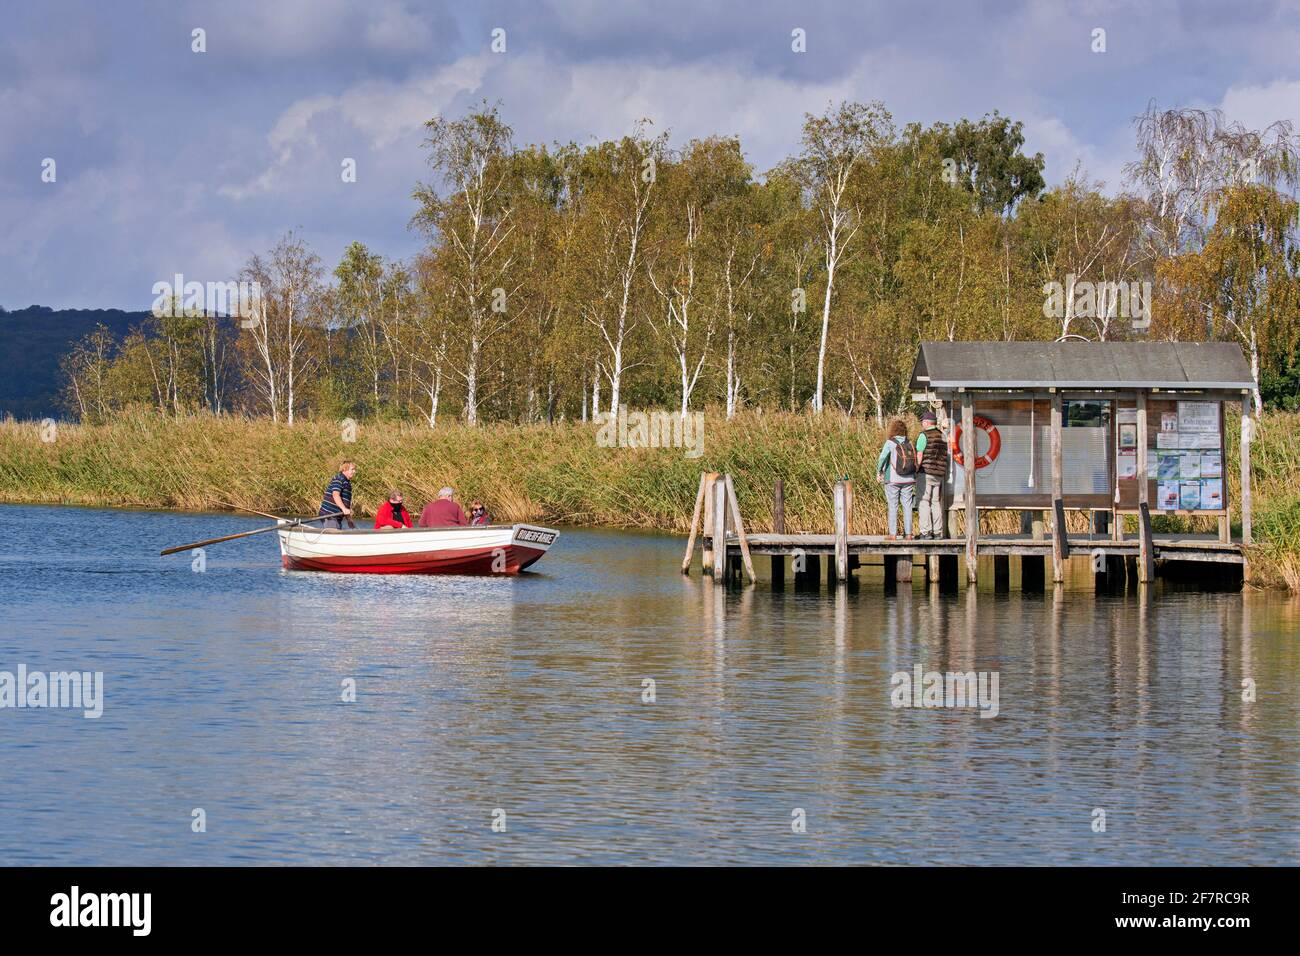 Moritzdorf passenger ferry across the Baaber Bek on the island Rügen / Ruegen, rowboat connecting Baabe with Sellin in Mecklenburg-Vorpommern, Germany Stock Photo